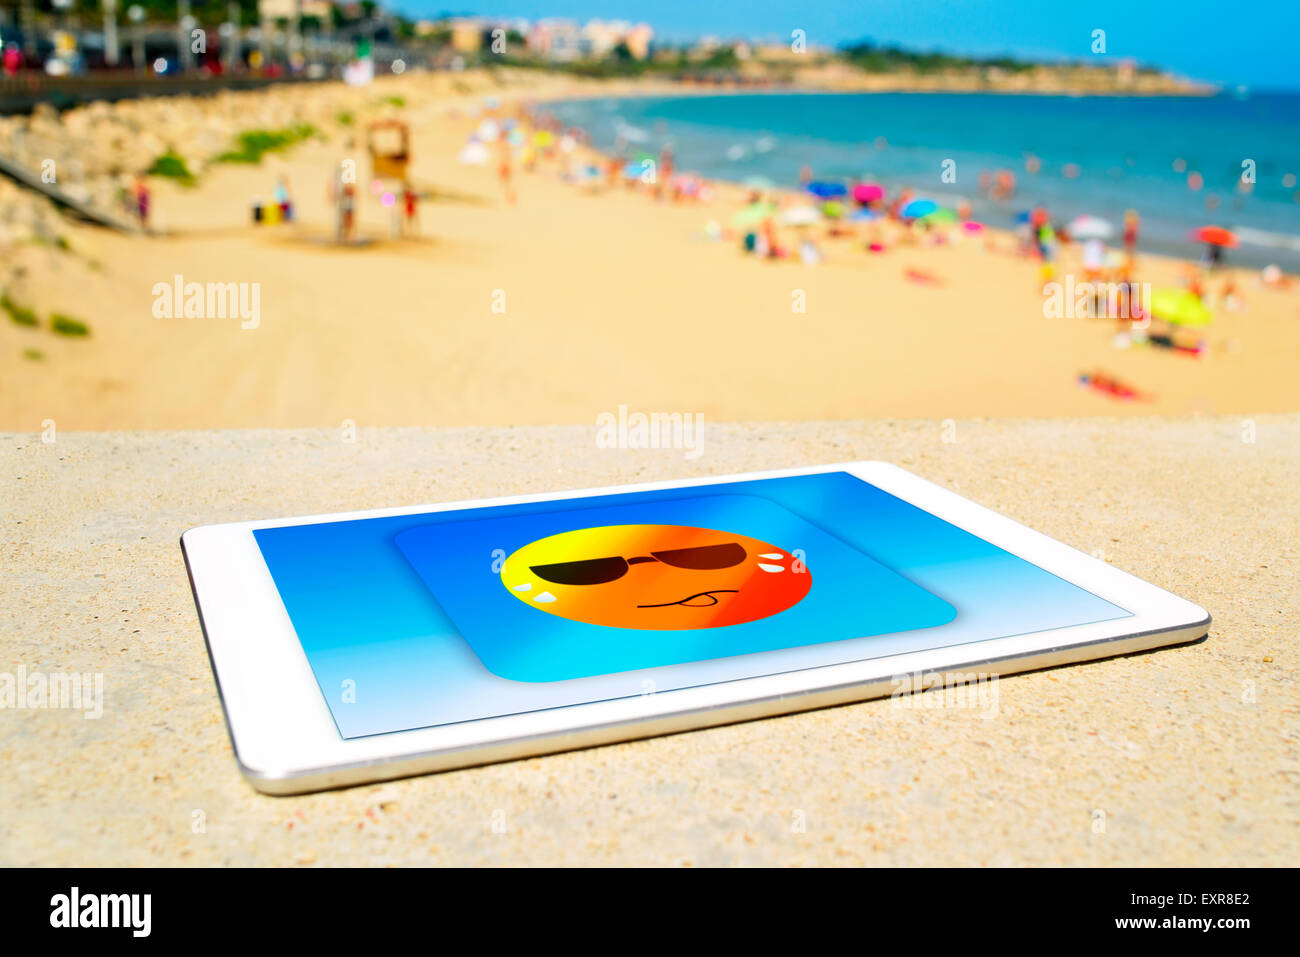 a tablet computer with an icon of a sun wearing sunglasses and sweating, designed by myself, at the beach, depicting - Stock Image